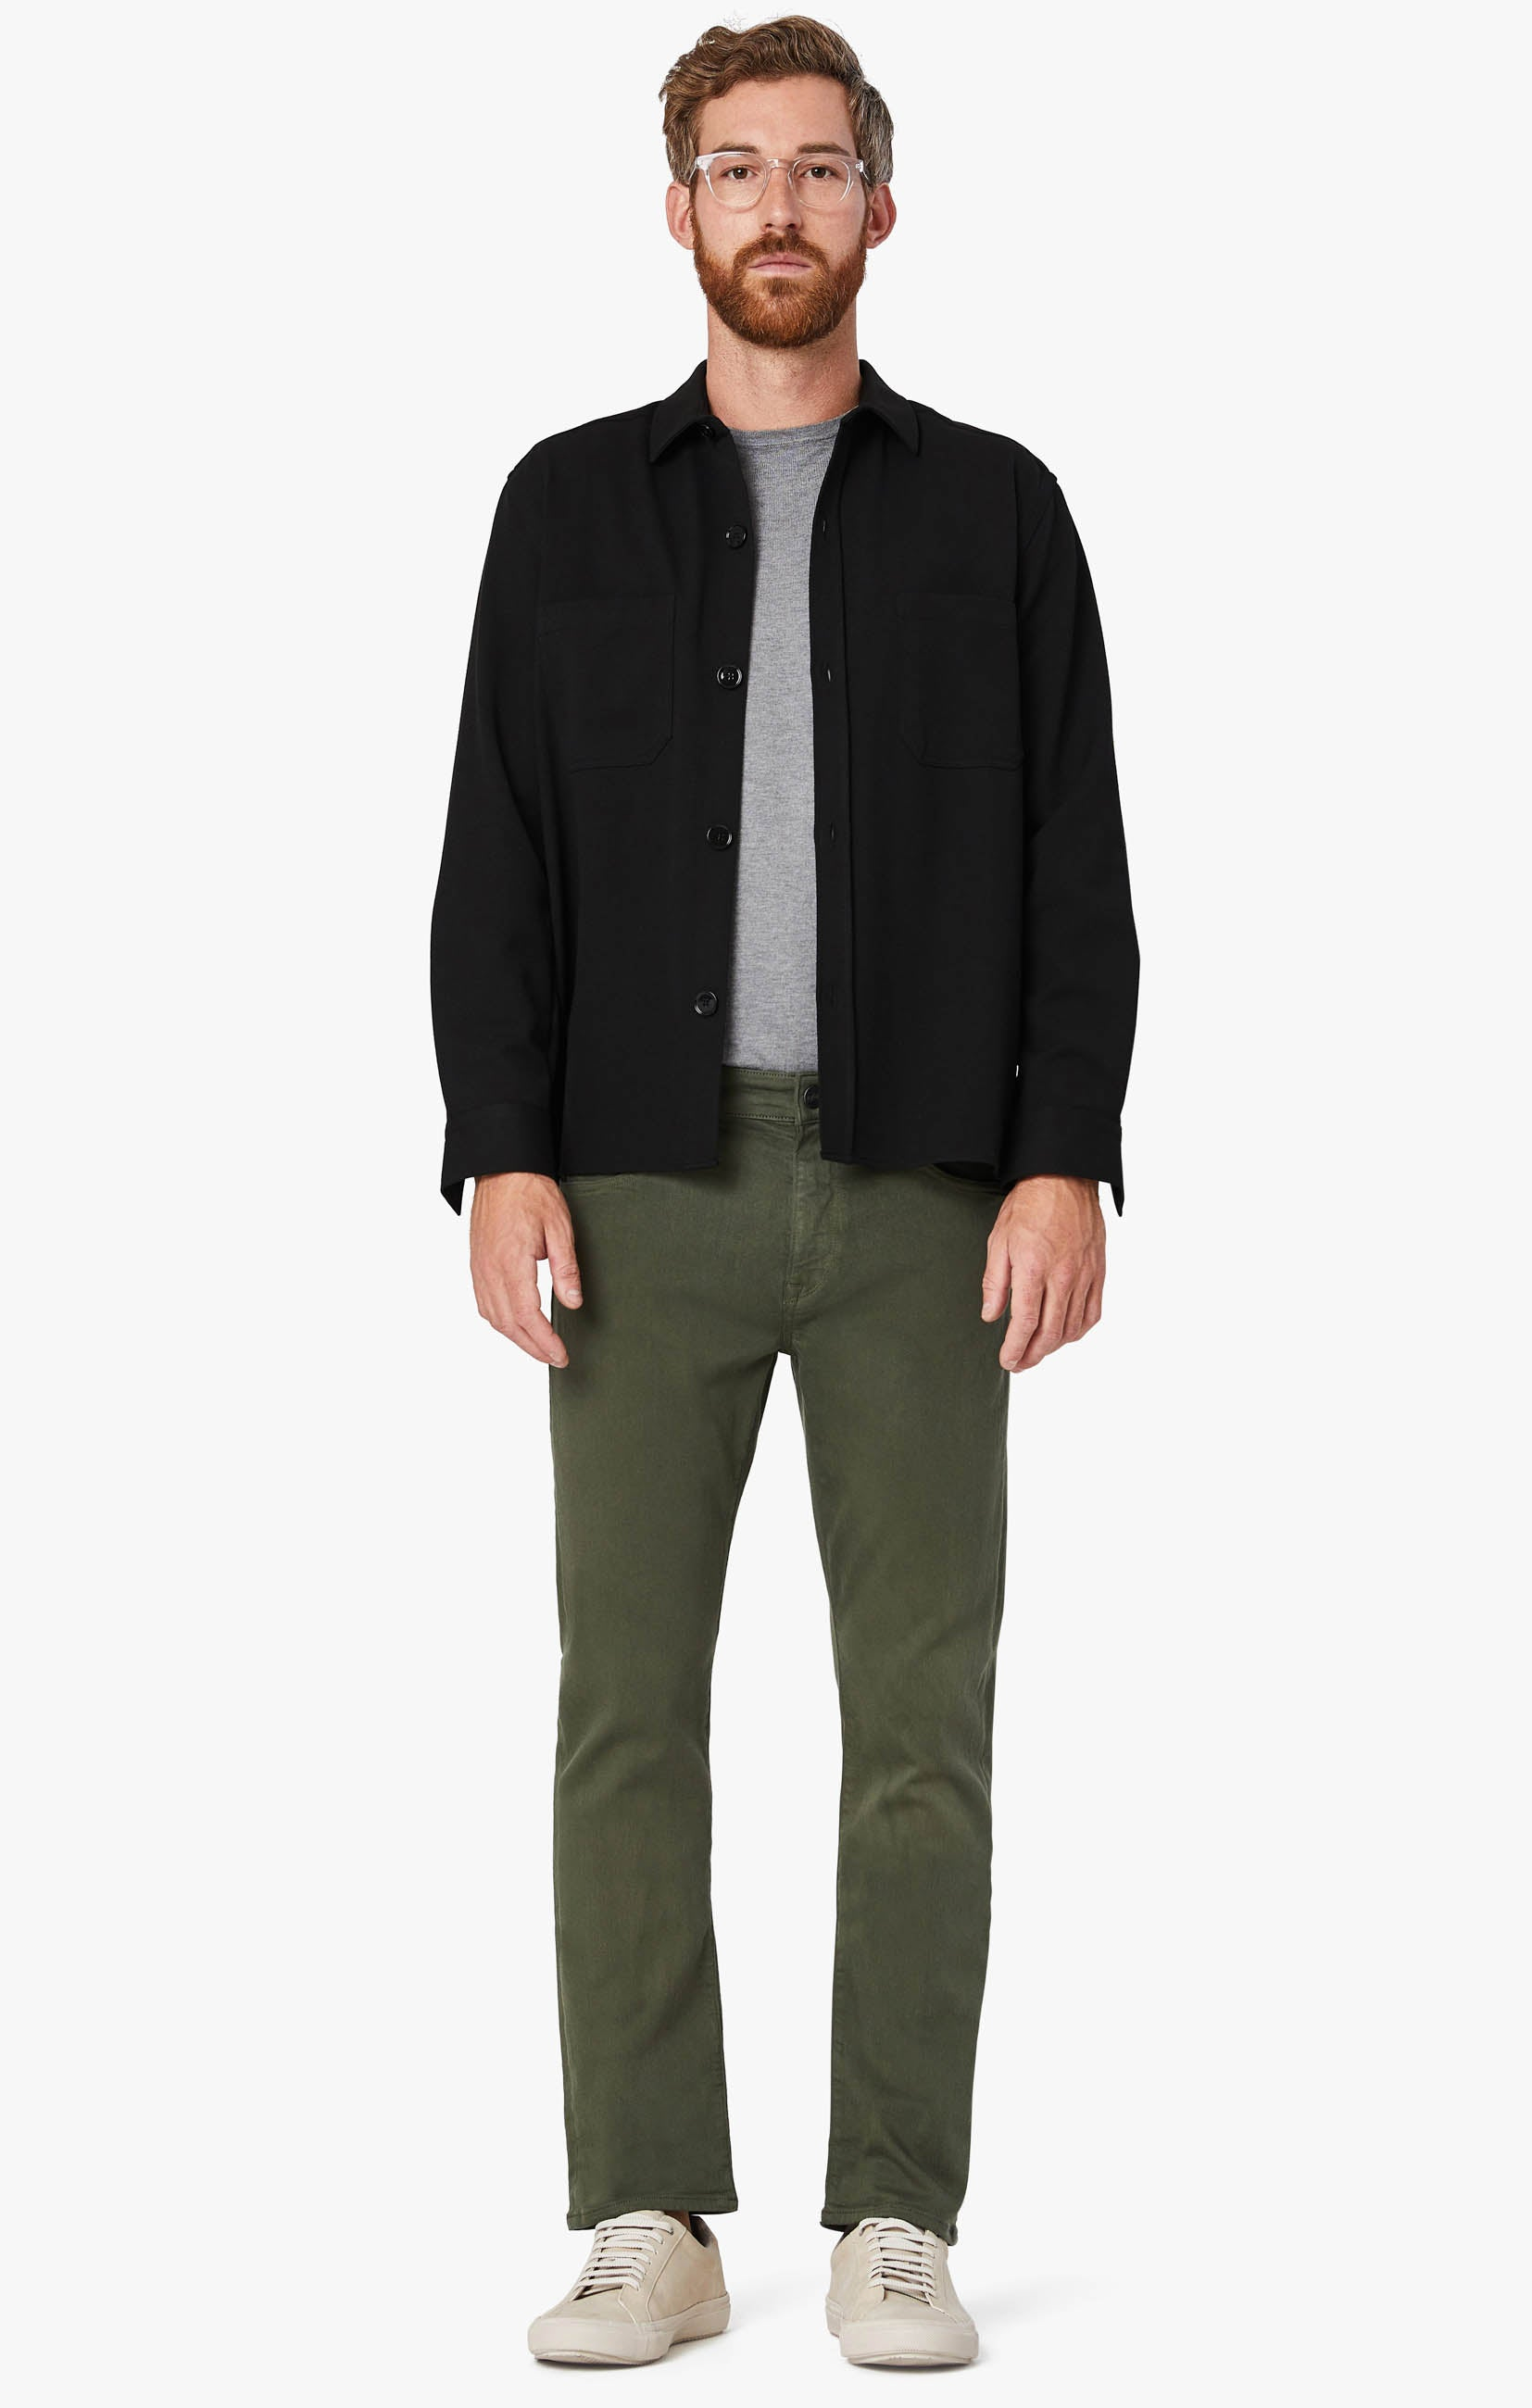 Courage Straight Leg Pants In Military Green Comfort Image 6